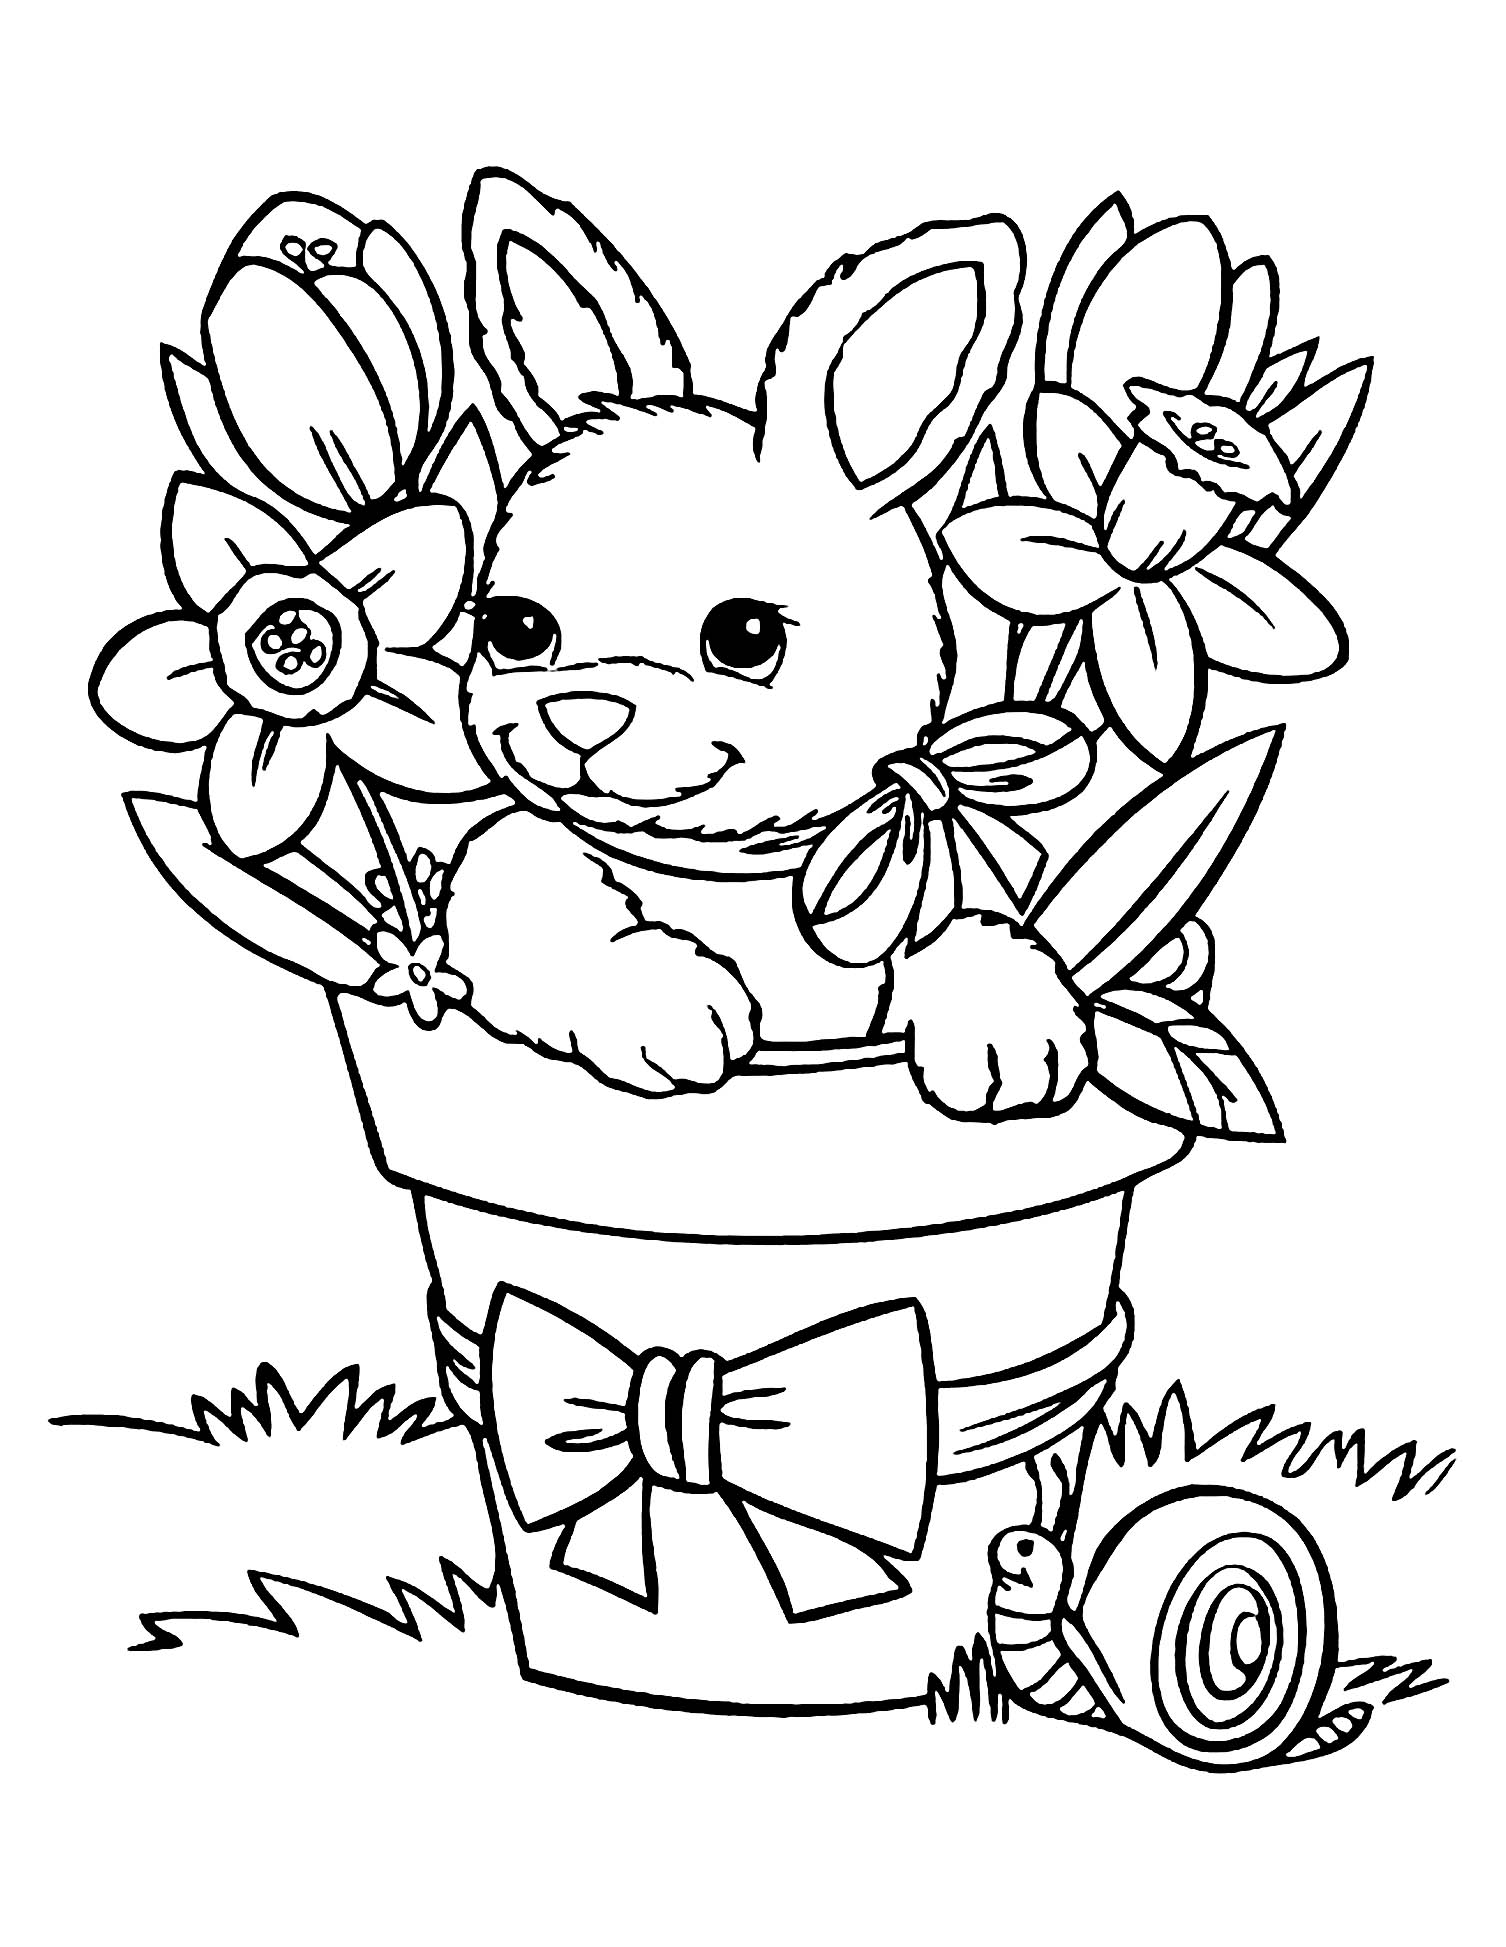 bunny color sheet rabbit to color for children rabbit kids coloring pages sheet bunny color